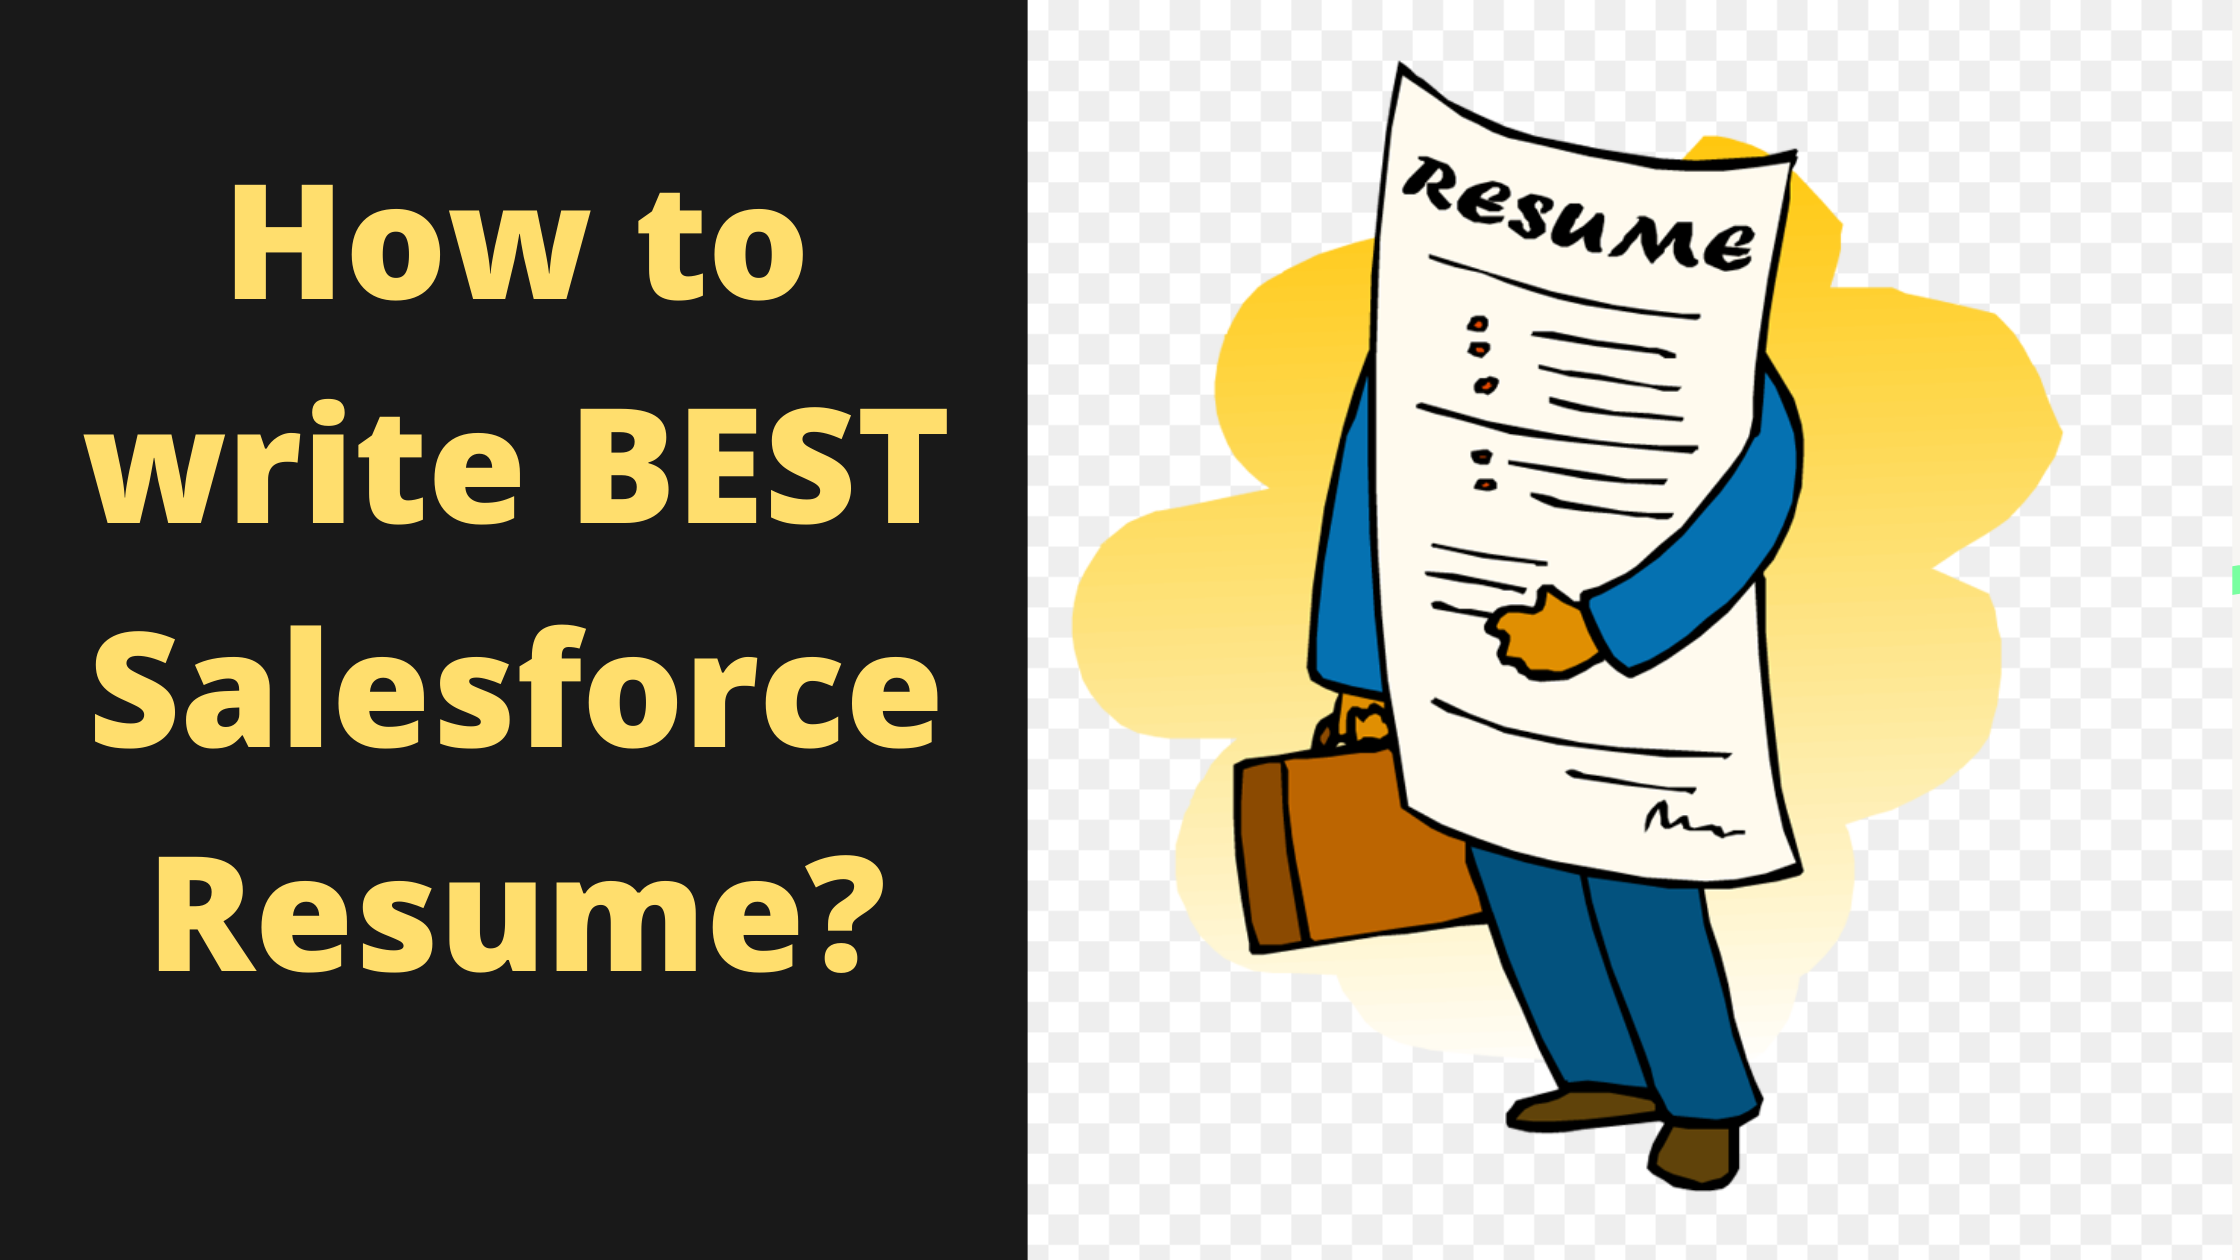 Salesforce Resume Tips